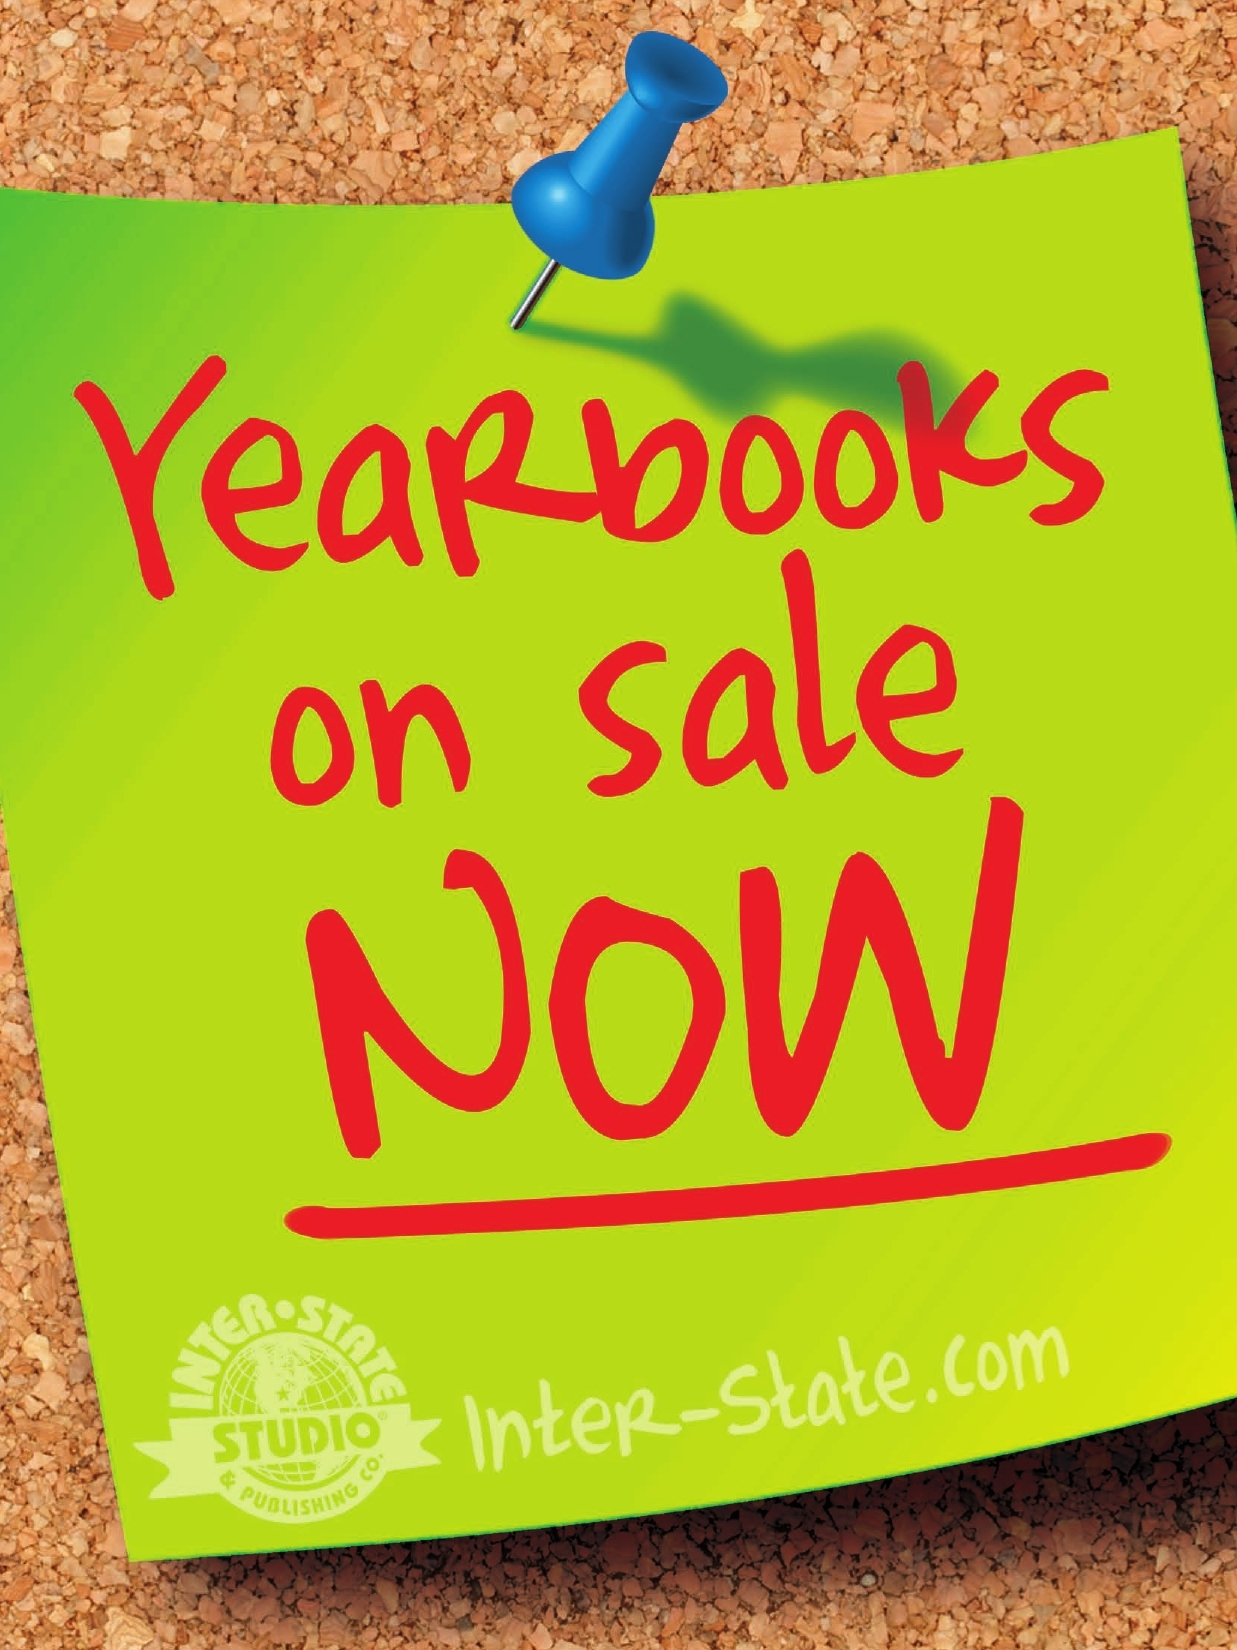 Yearbooks For Sale Flyer Juveique27